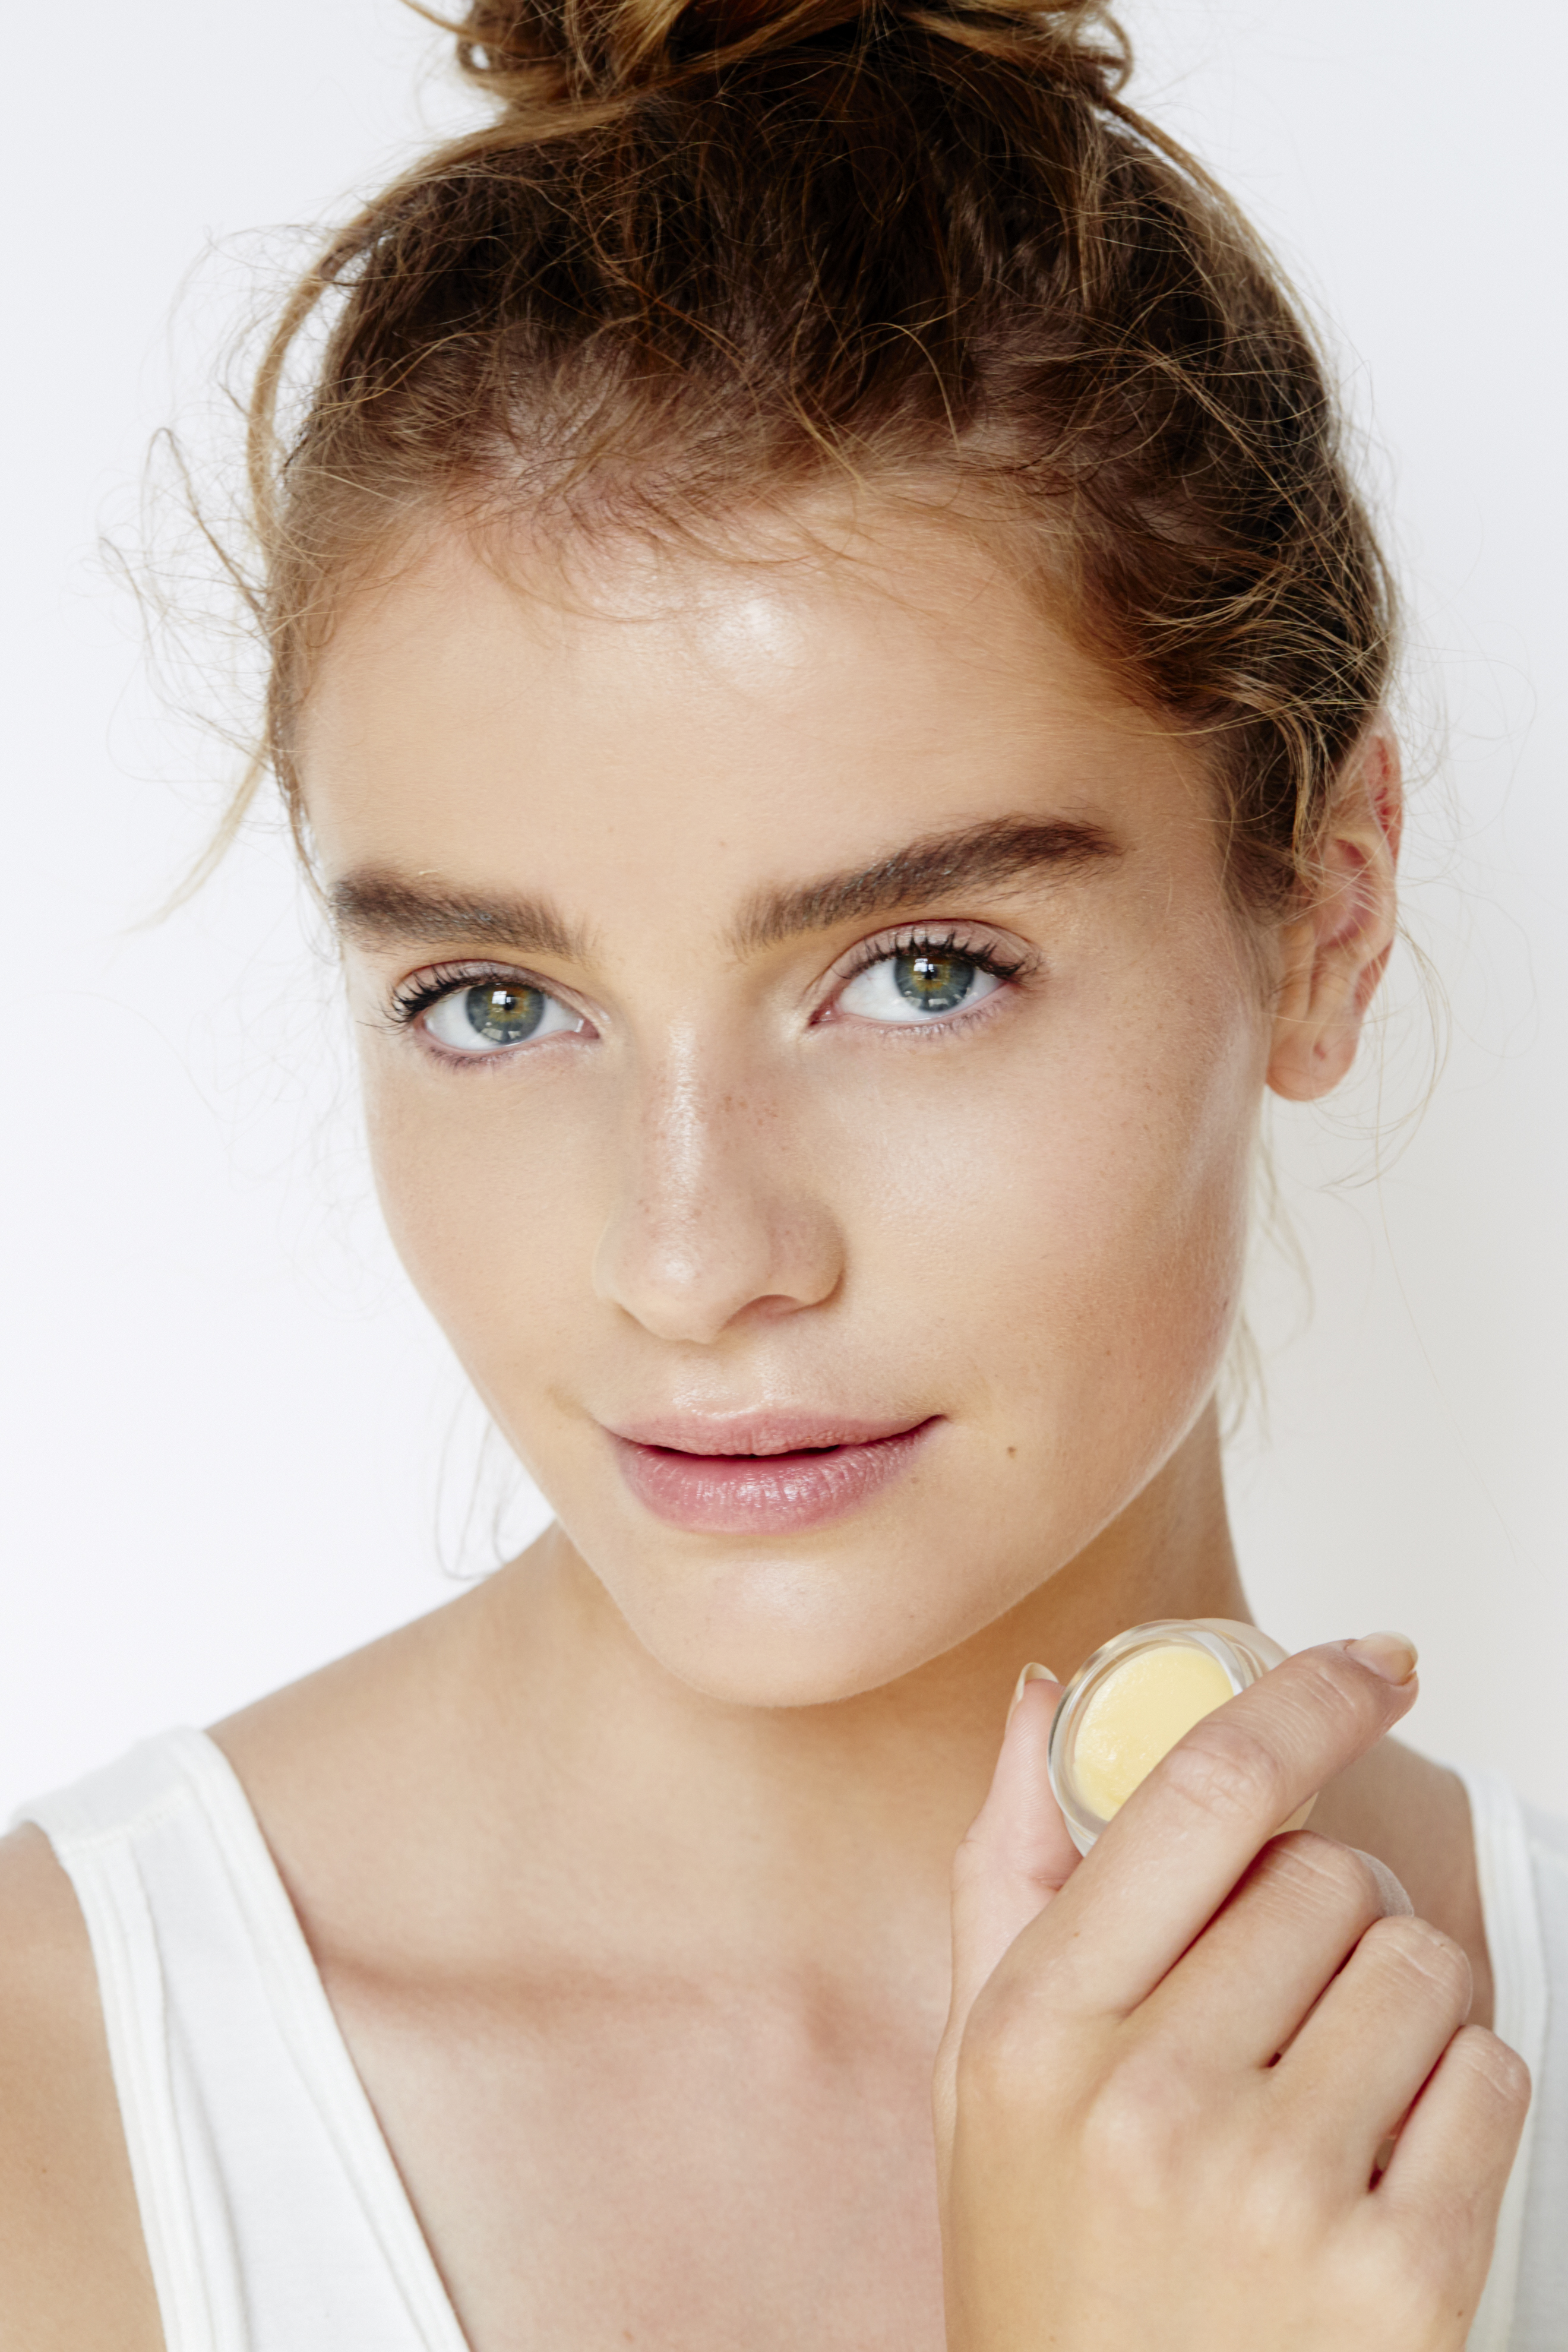 A beauty image for Free People's website.